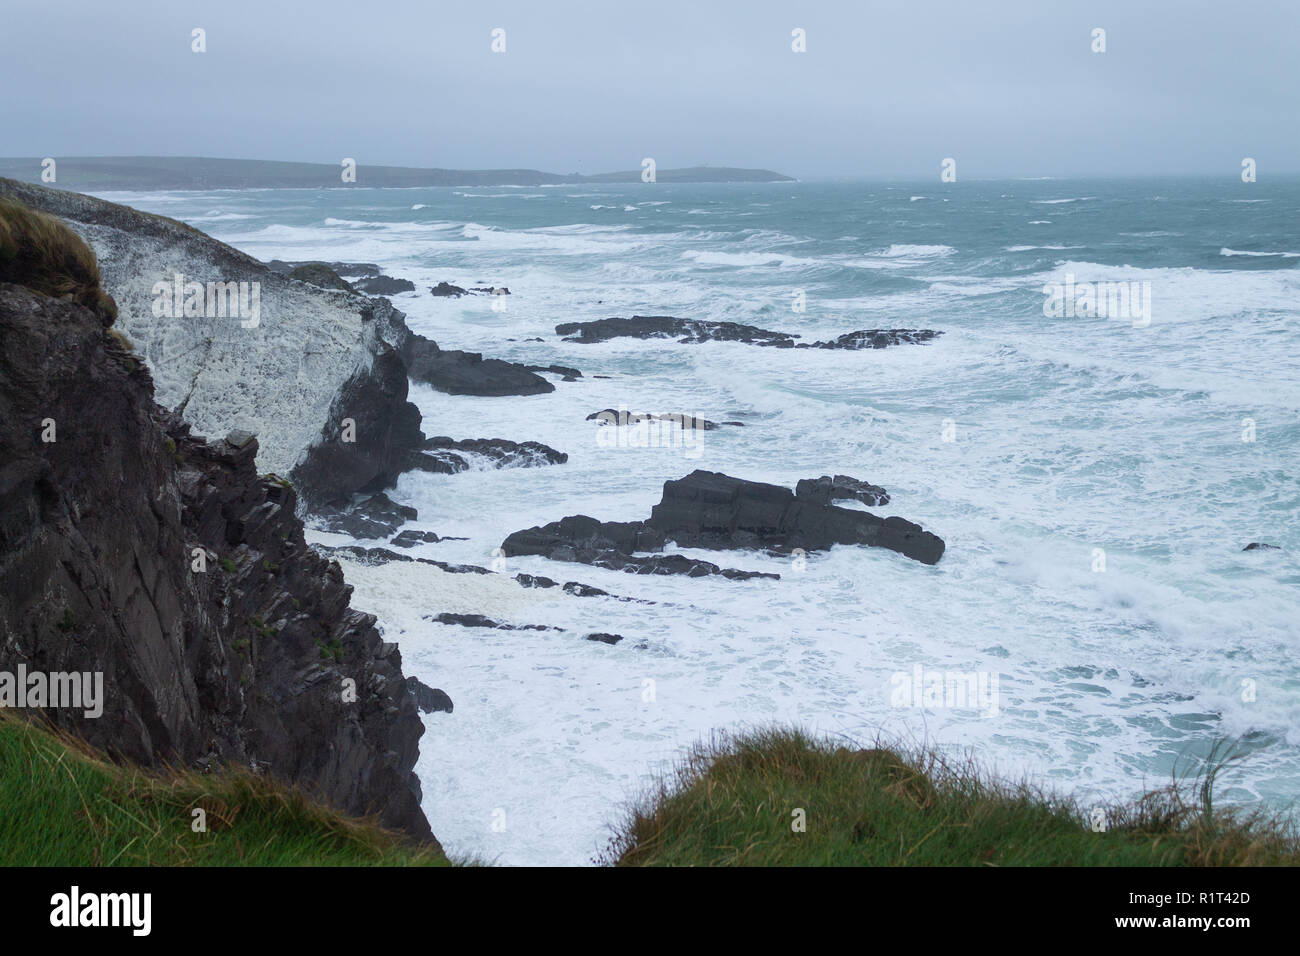 rough sea's covering cliff face in sea foam from a storm. west cork ireland - Stock Image